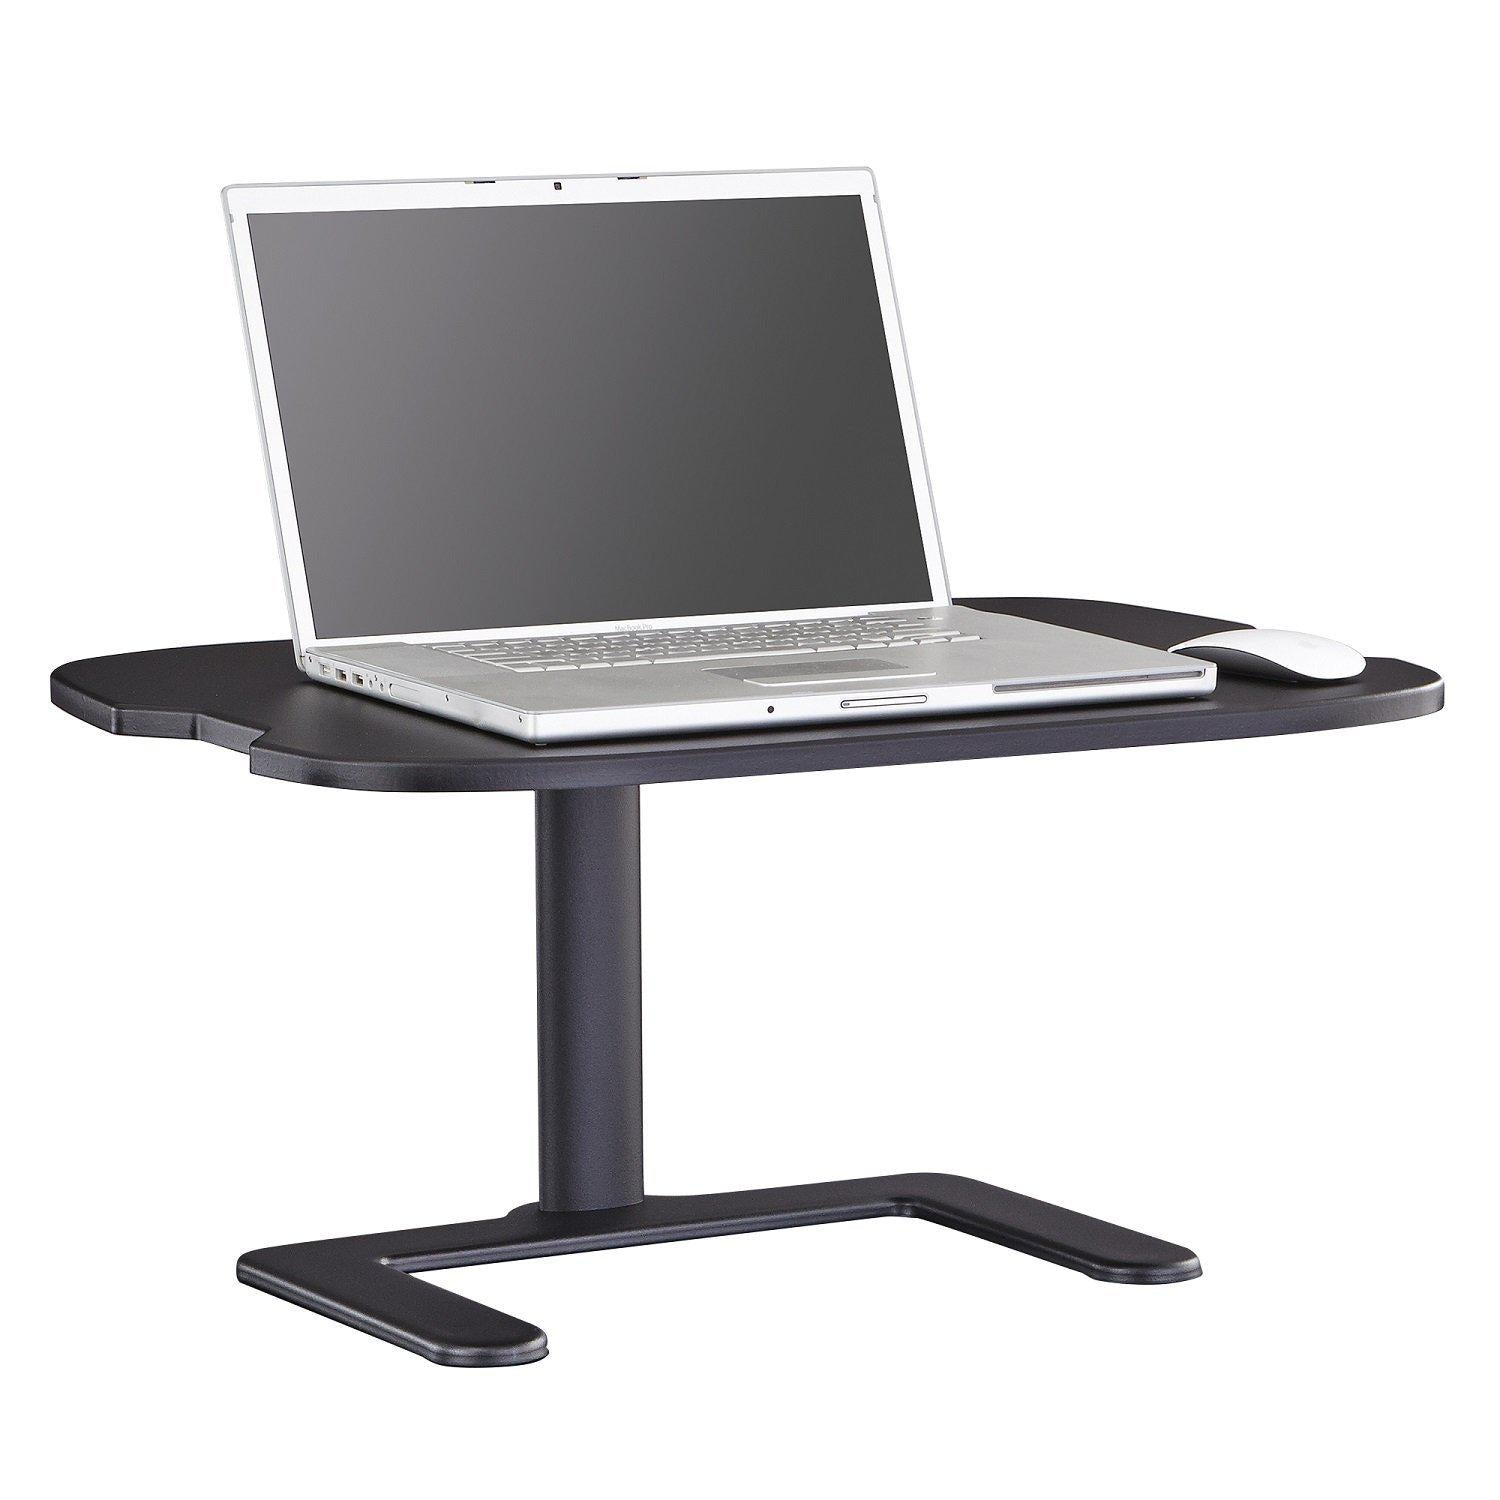 Stance™ Height-Adjustable Laptop Stand-